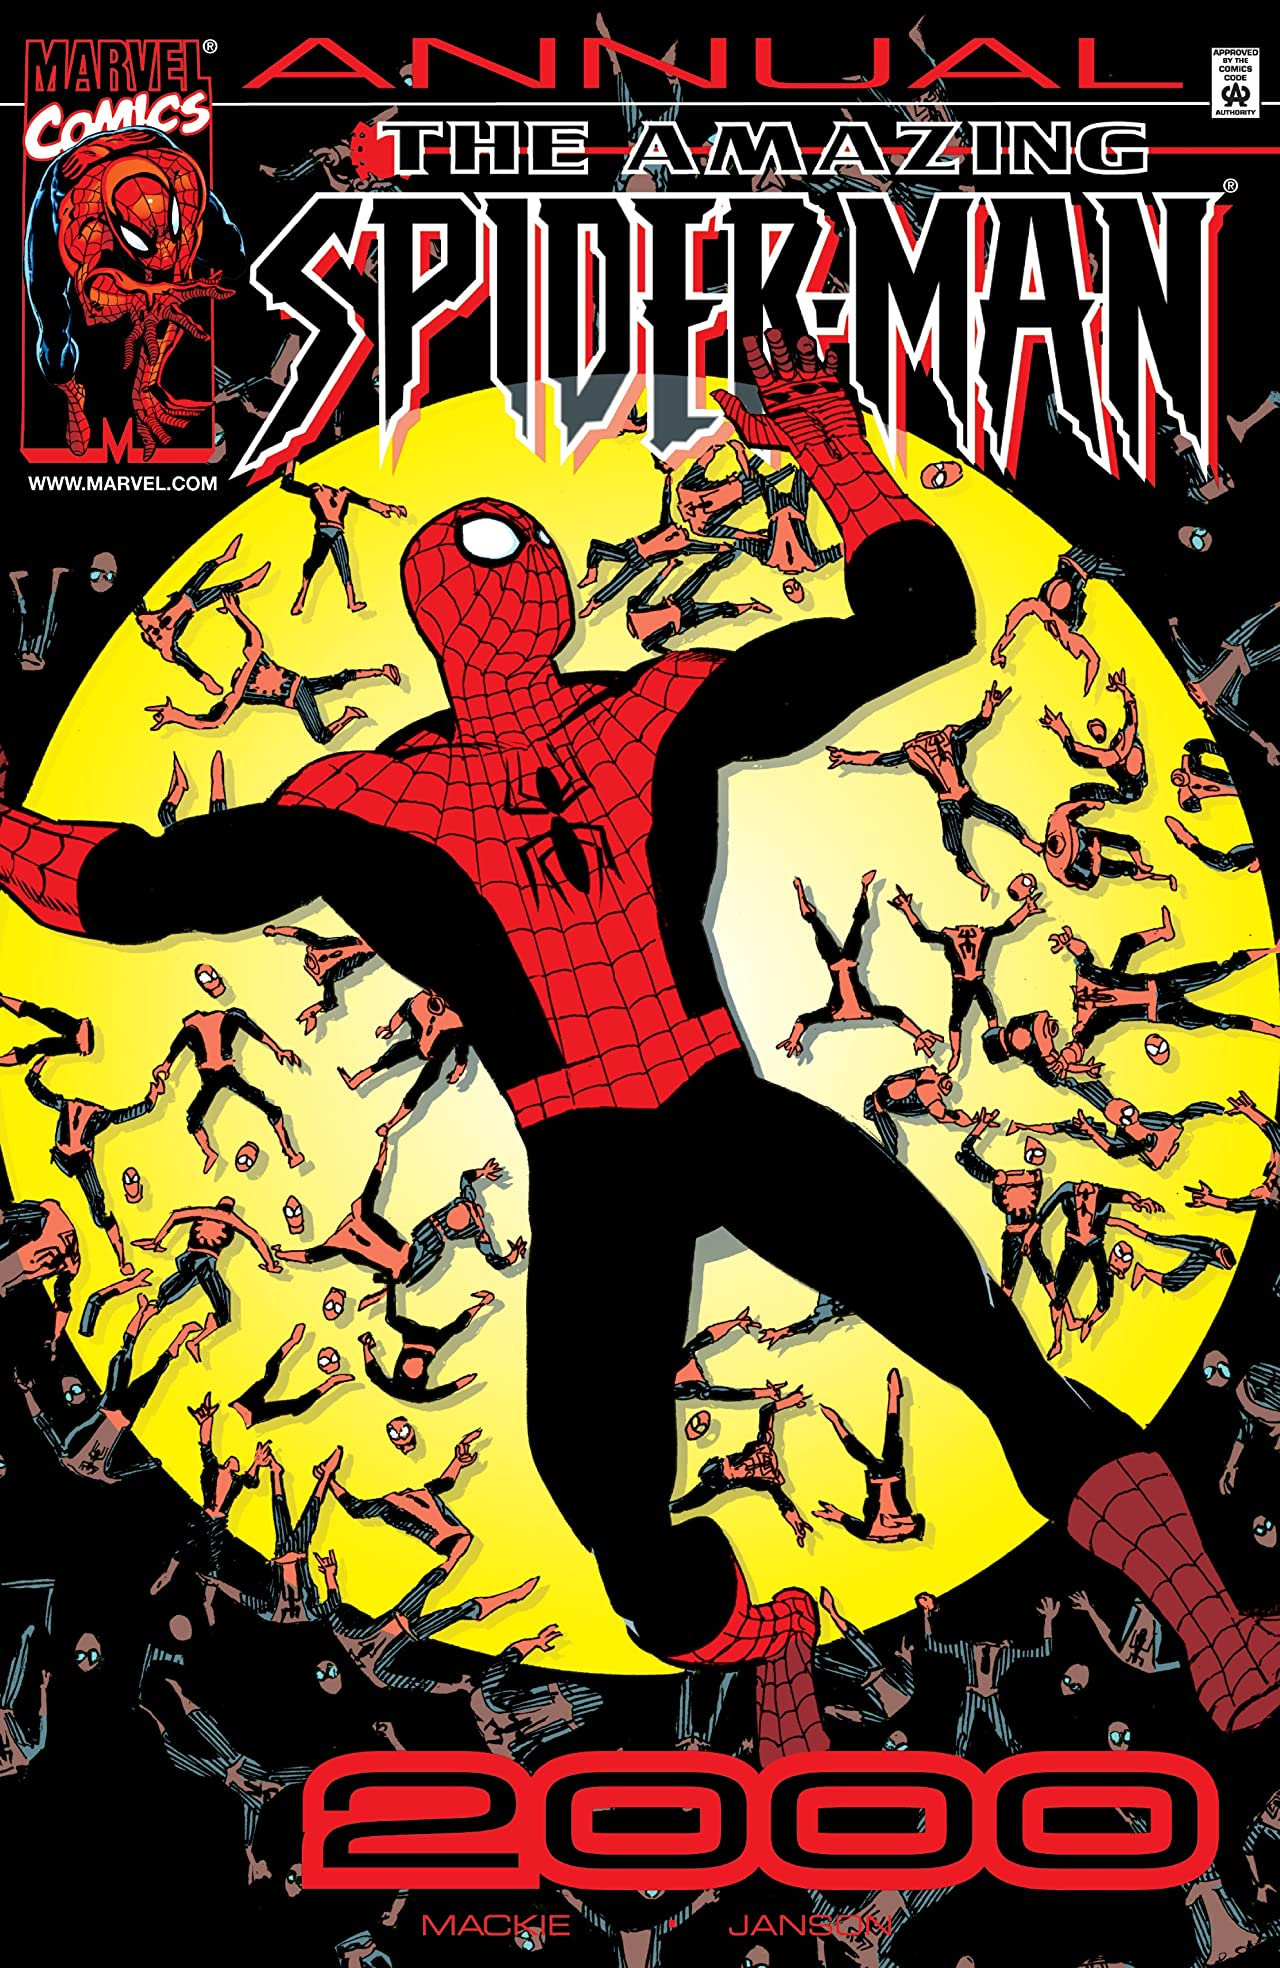 Amazing Spider-Man Annual 2000 #1